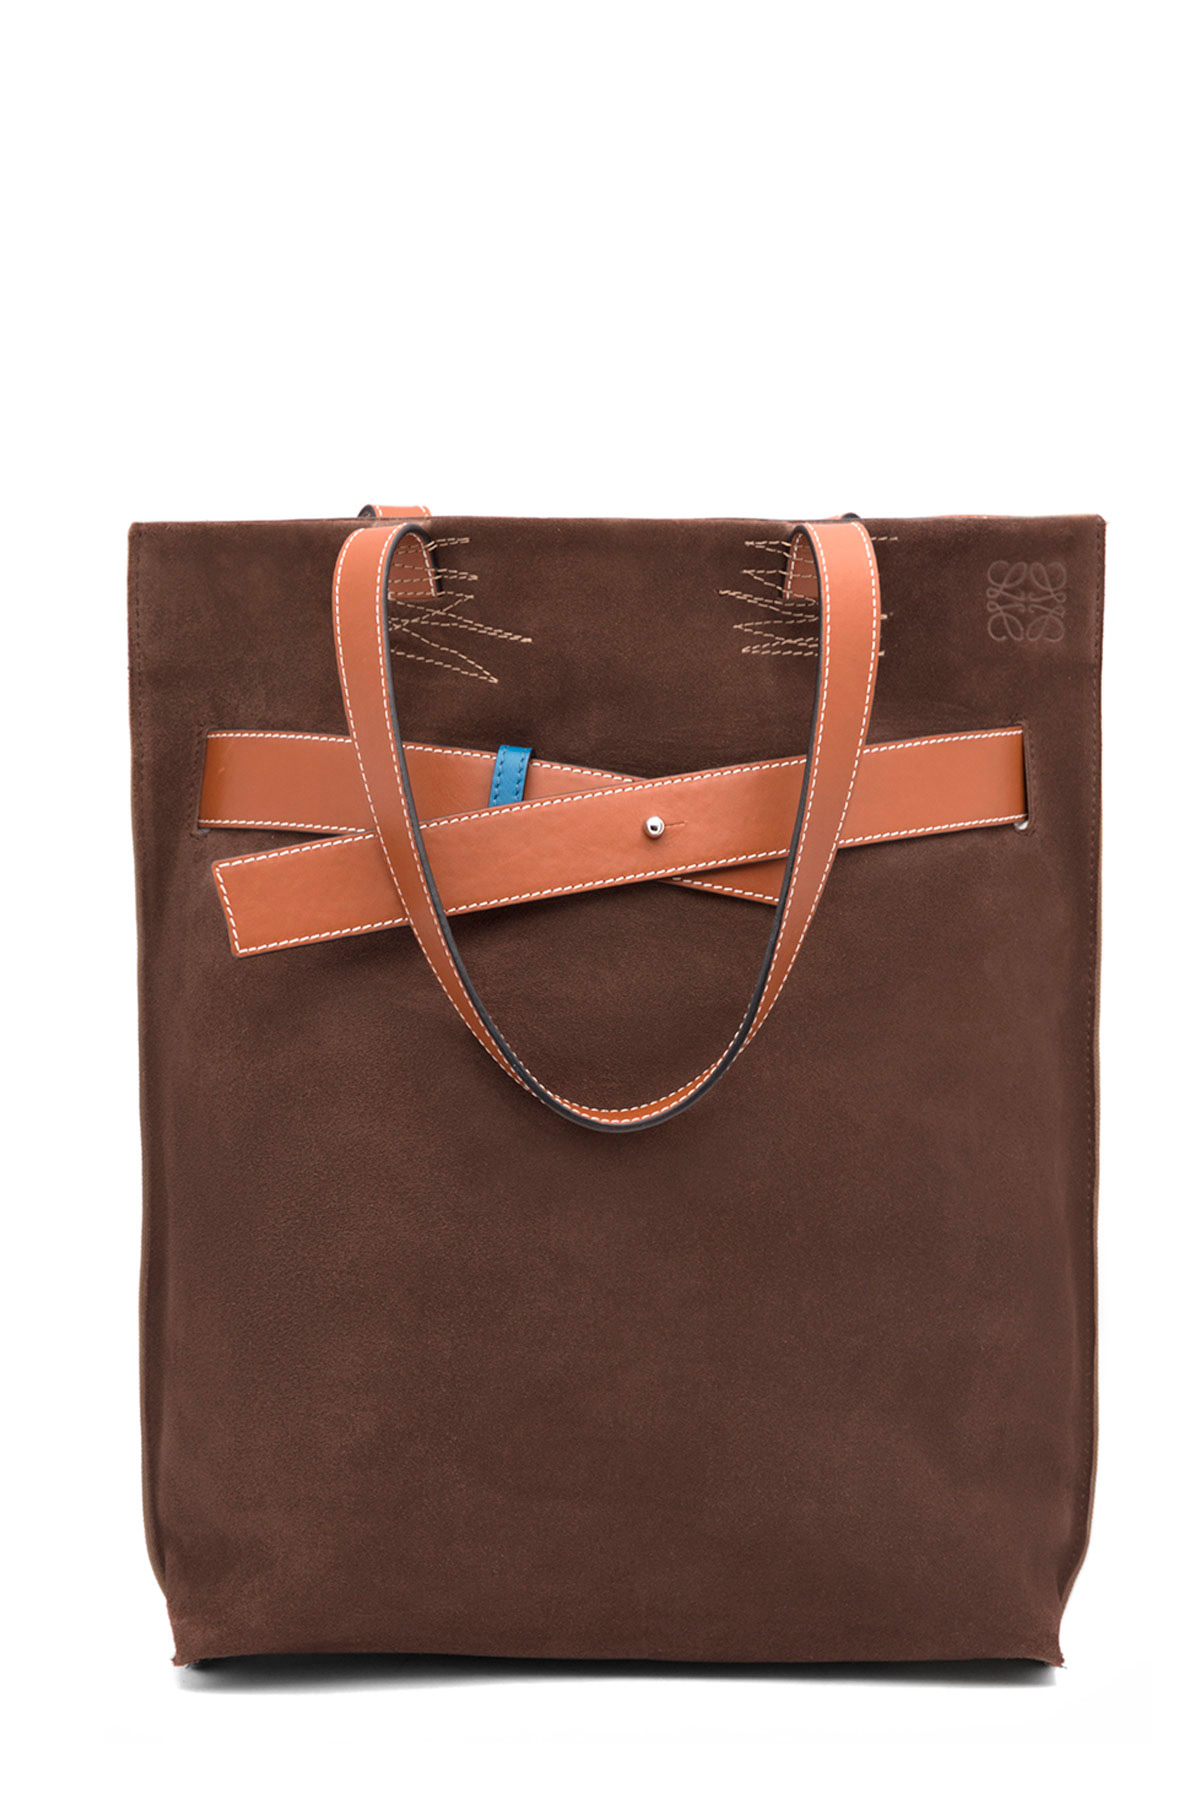 LOEWE Strap Vertical Tote Bag Choc Brown/Khaki Green/Tan front